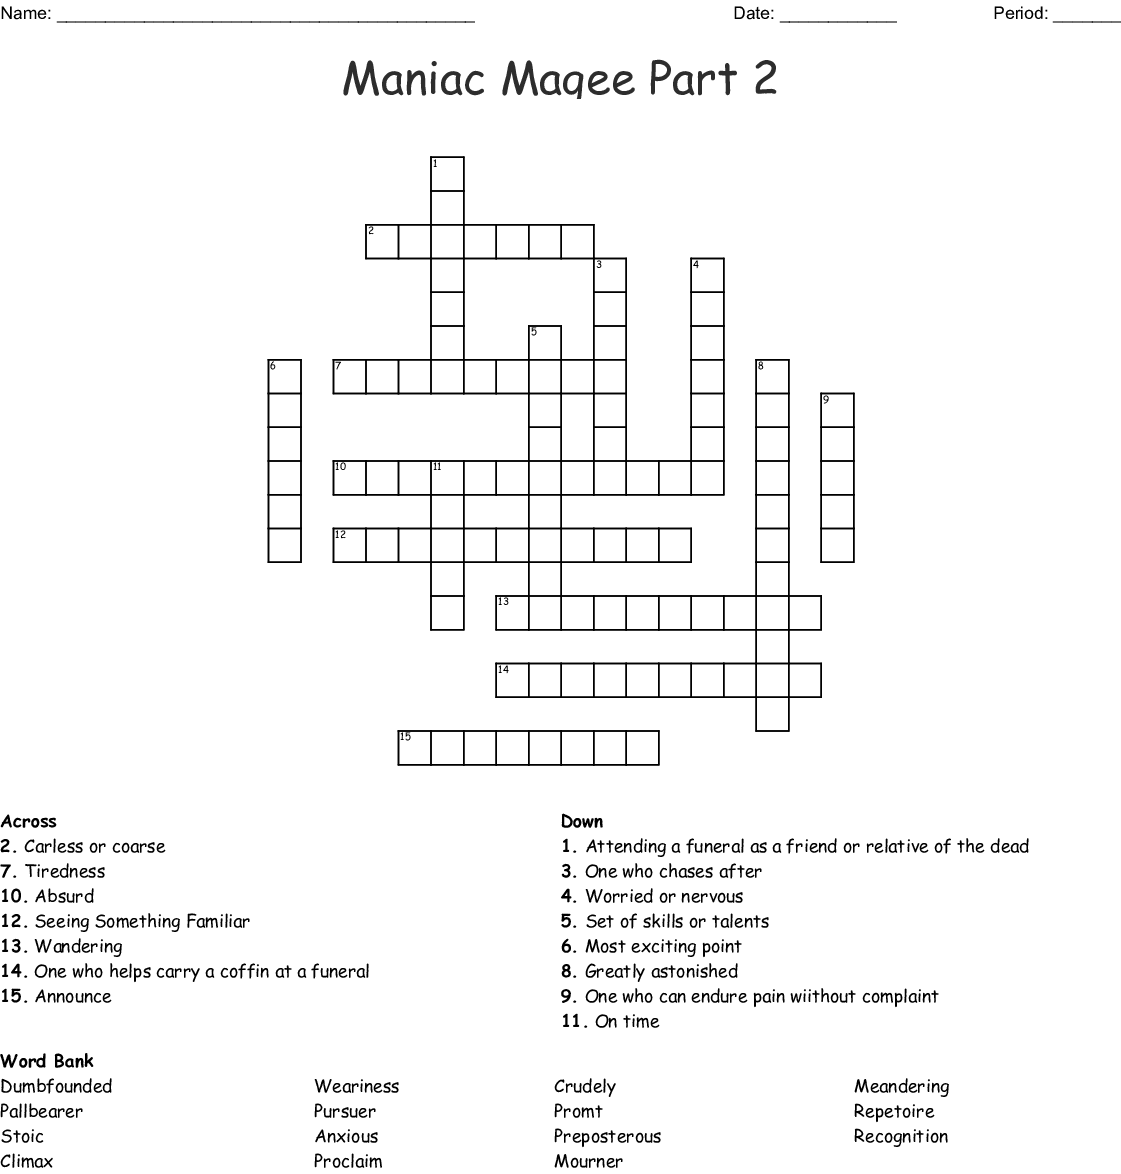 Maniac Magee Crossword